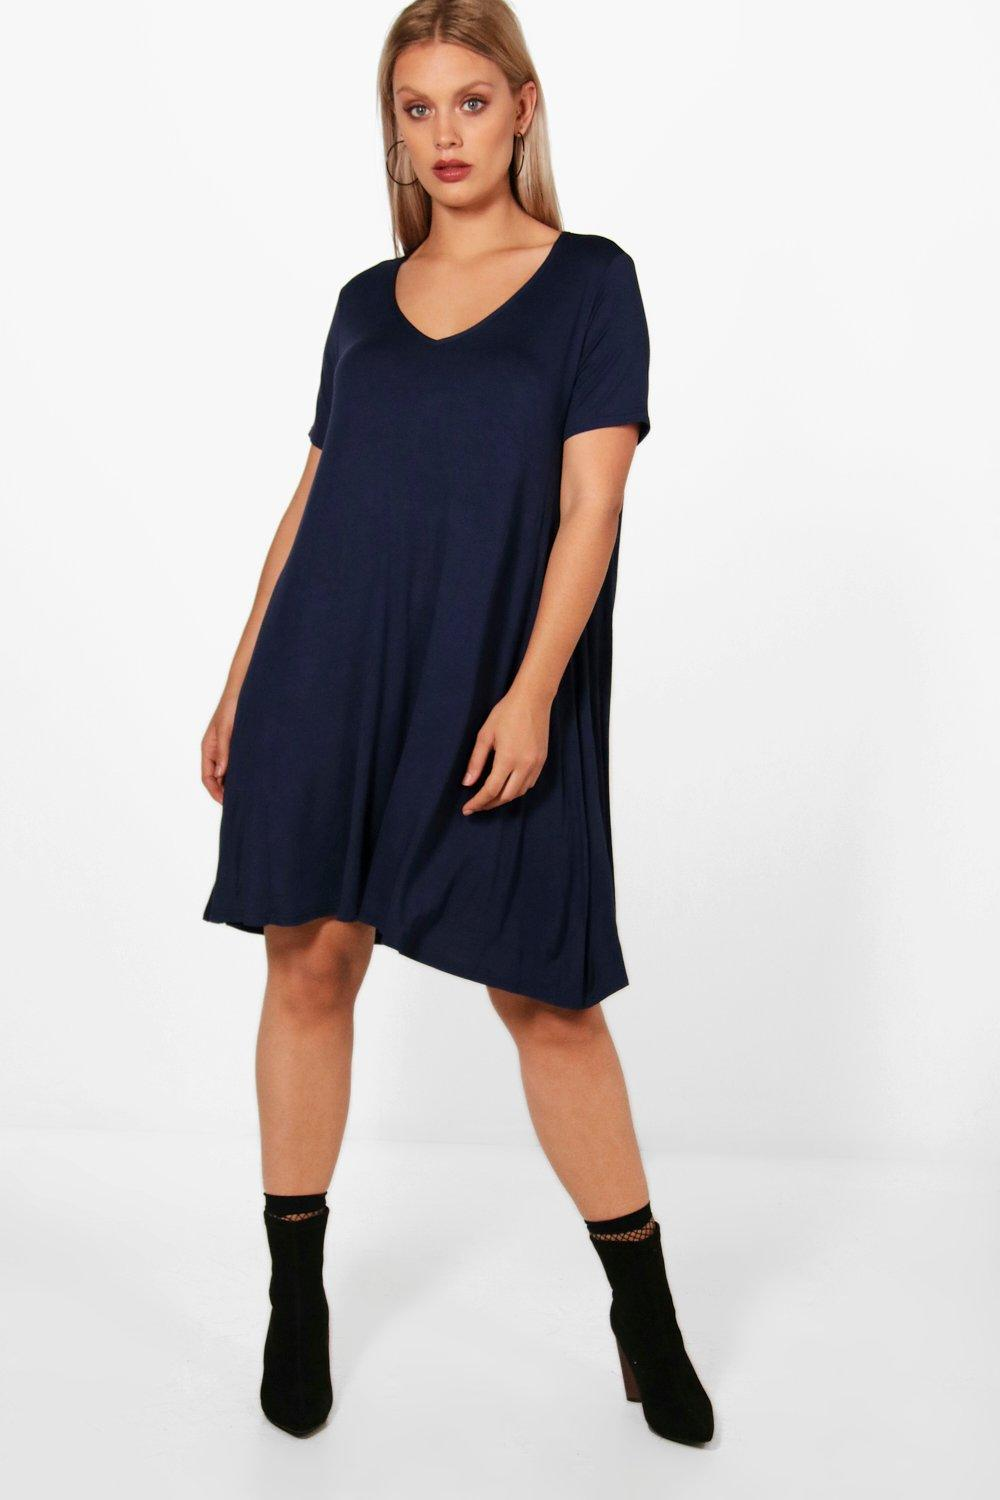 Plus Suzie Basic V Neck Swing Dress